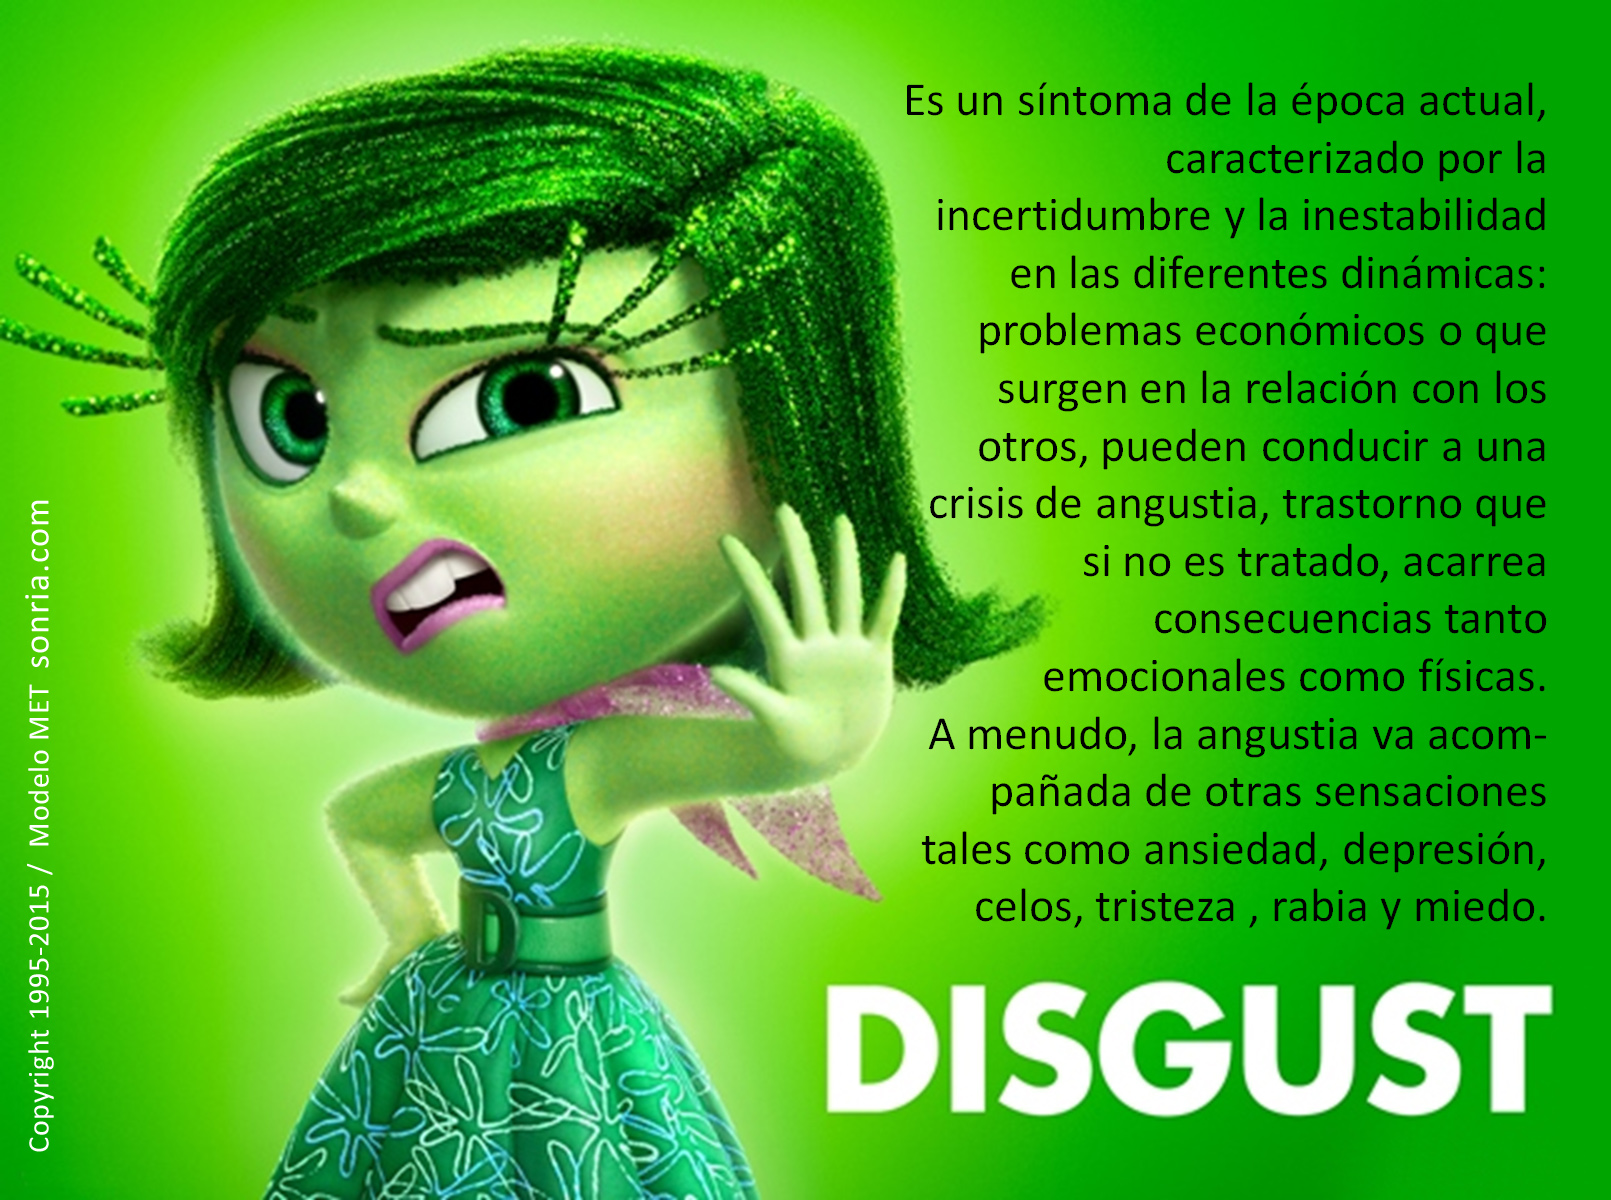 disgusto2